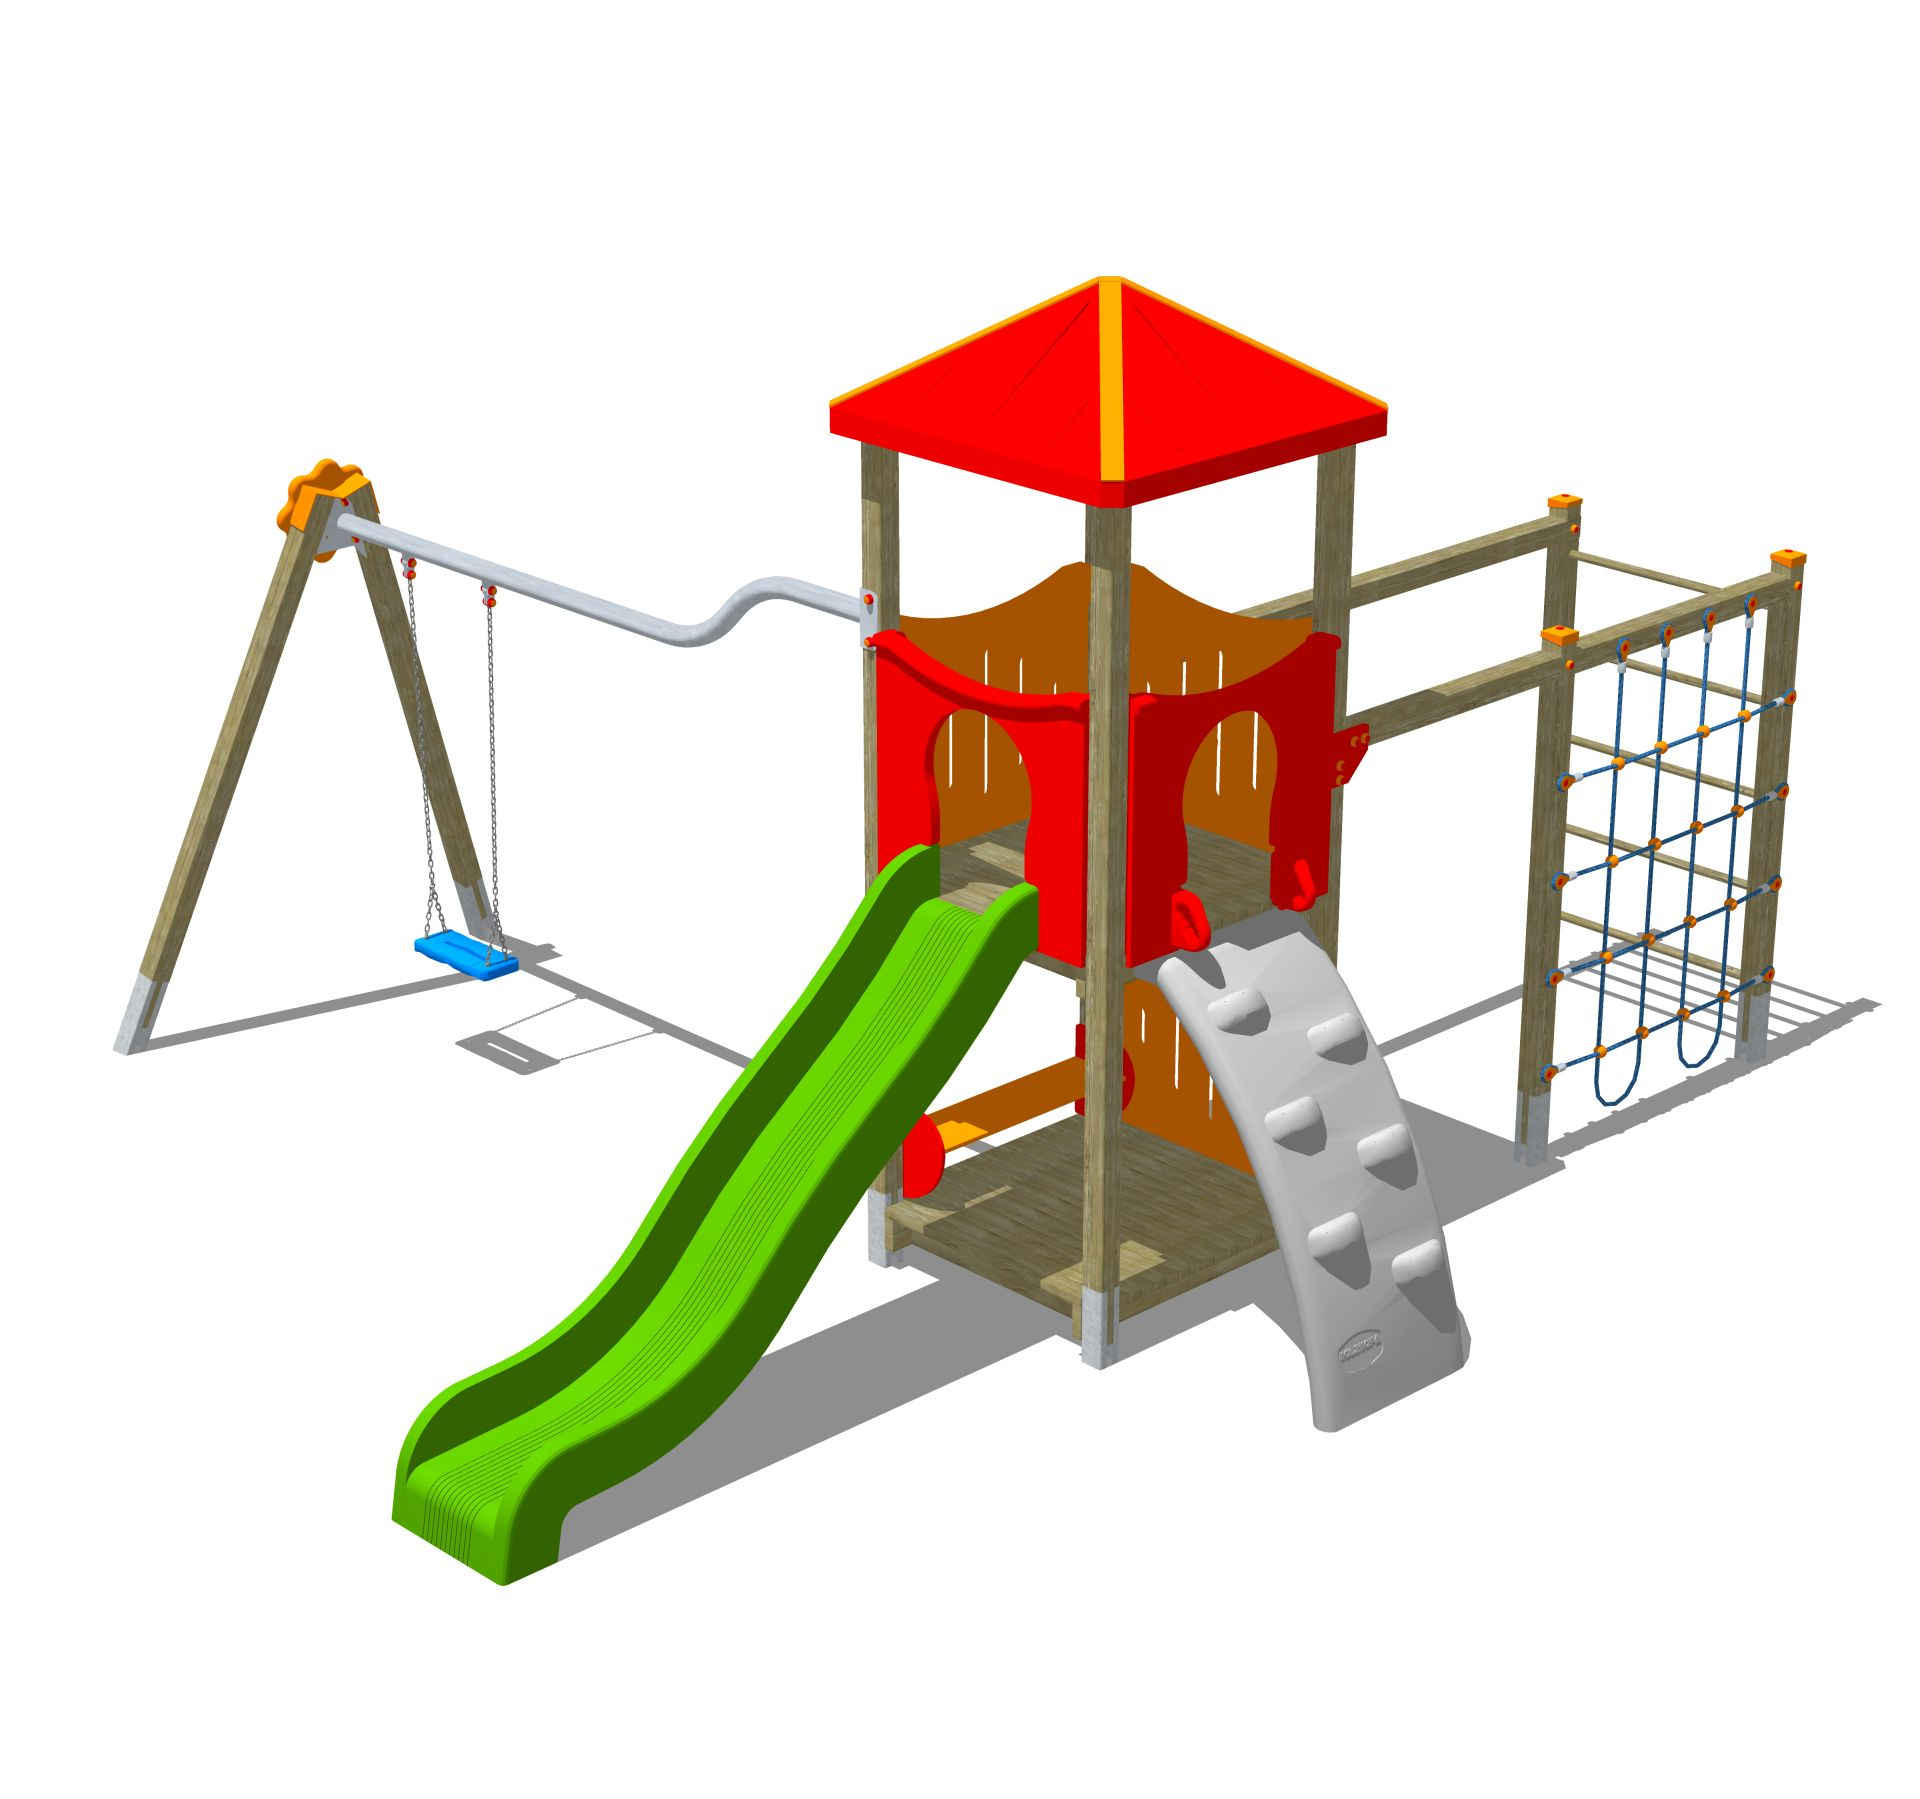 Holzhof MAX & SULTAN Max 1 tower, slide h 144, polyethylene ramp + swing 1 palm shape seat + rope wall climber